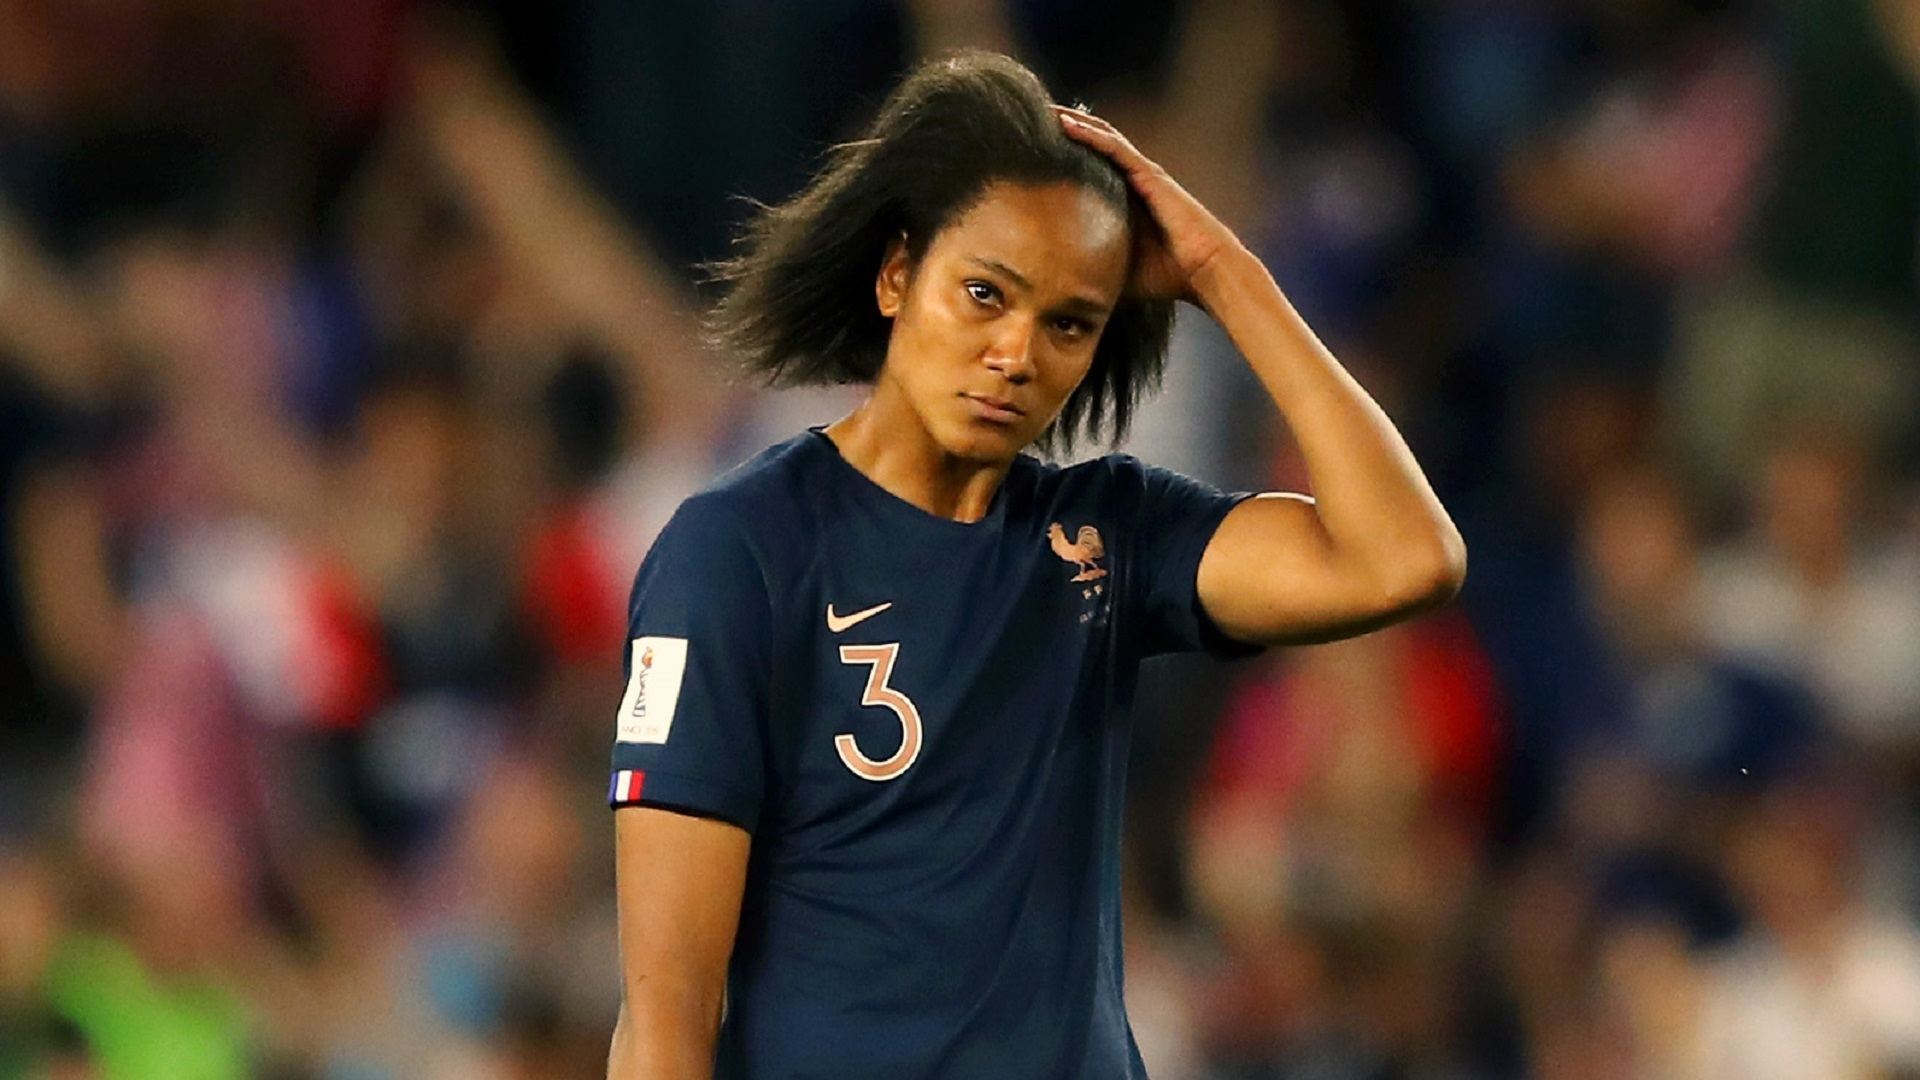 PARIS, FRANCE - JUNE 28: Wendie Renard of France looks dejected following the 2019 FIFA Women's World Cup France Quarter Final match between France and USA at Parc des Princes on June 28, 2019 in Paris, France. (Photo by Richard Heathcote/Getty Images)